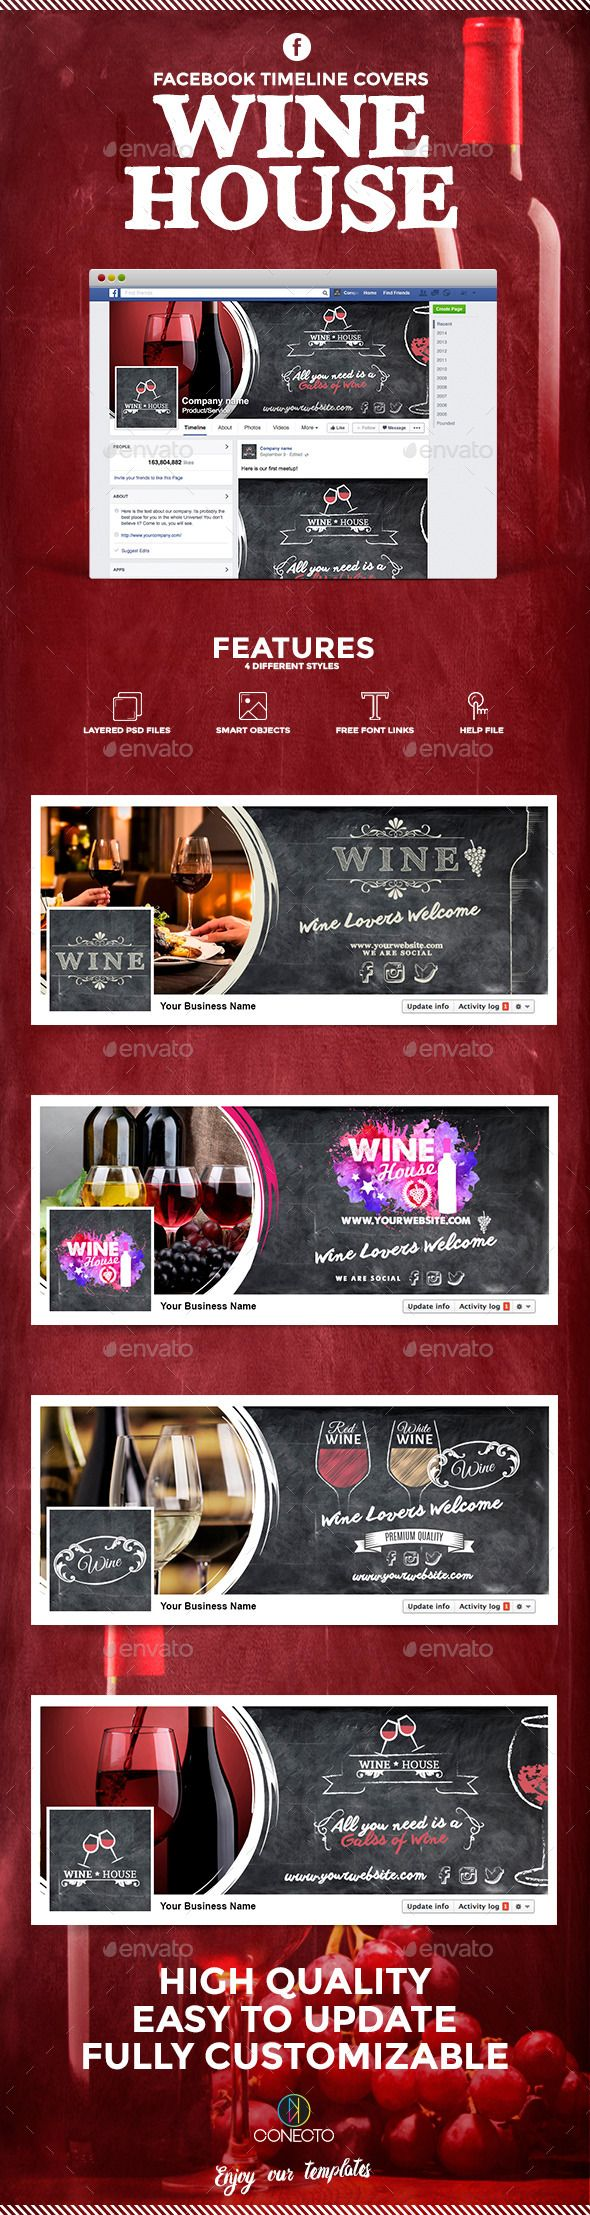 Facebook Timeline Cover - Wine House Template PSD #design Download: http://graphicriver.net/item/facebook-timeline-cover-wine-house/11892511?ref=ksioks